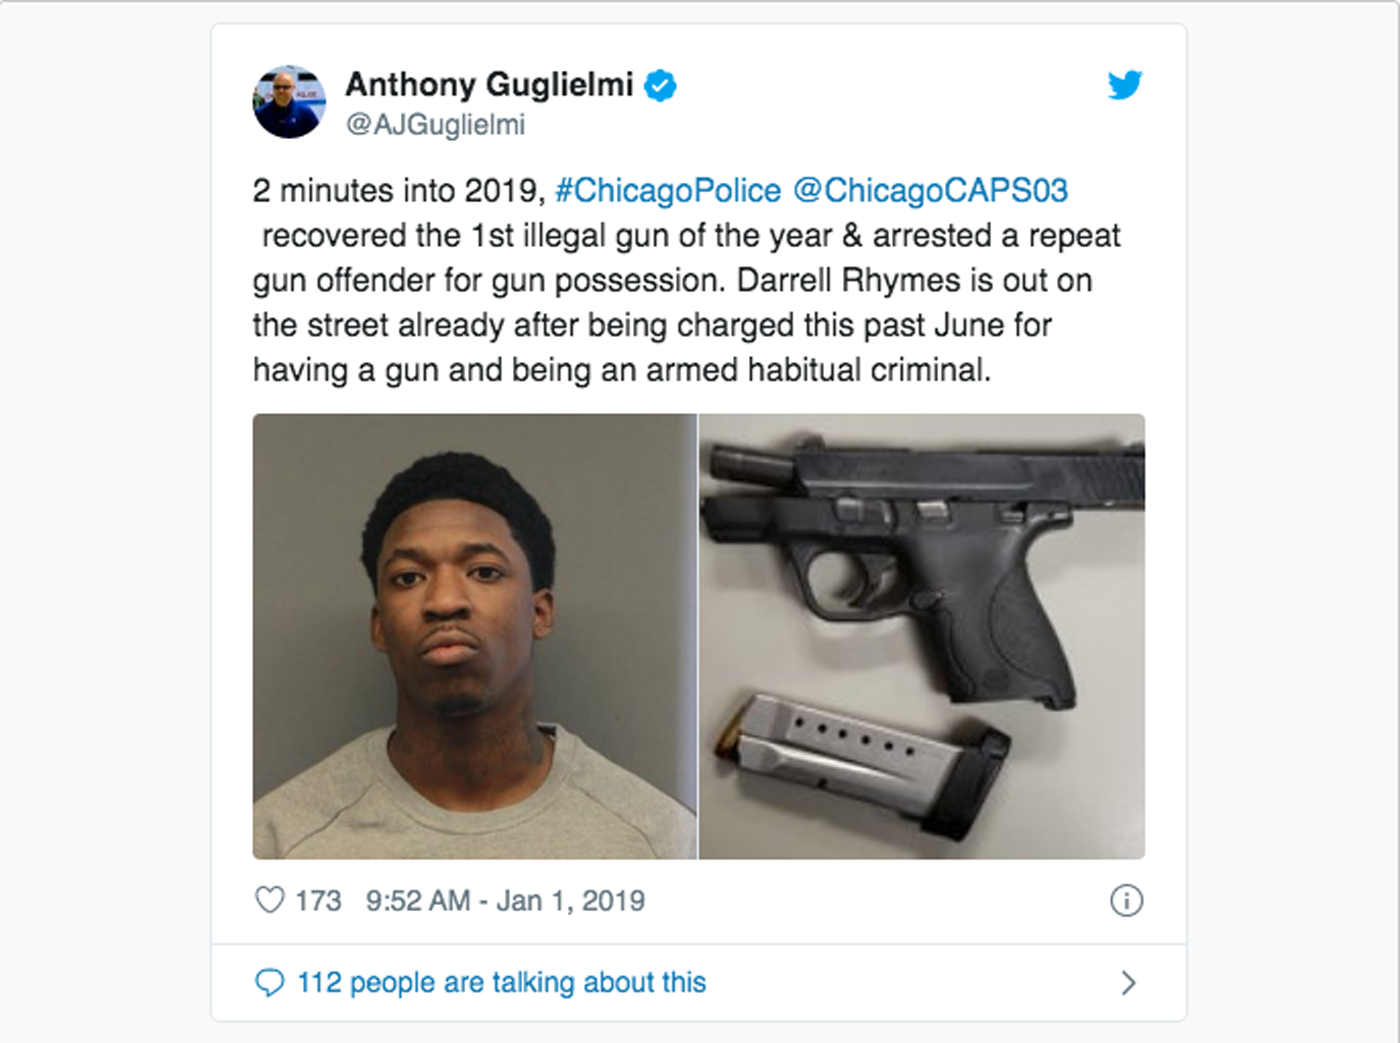 Darrell Rhyme's New Year's Day 2019 arrest attracted wide coverage after the Chicago police paraded him as a symbol of the city's gun problems.